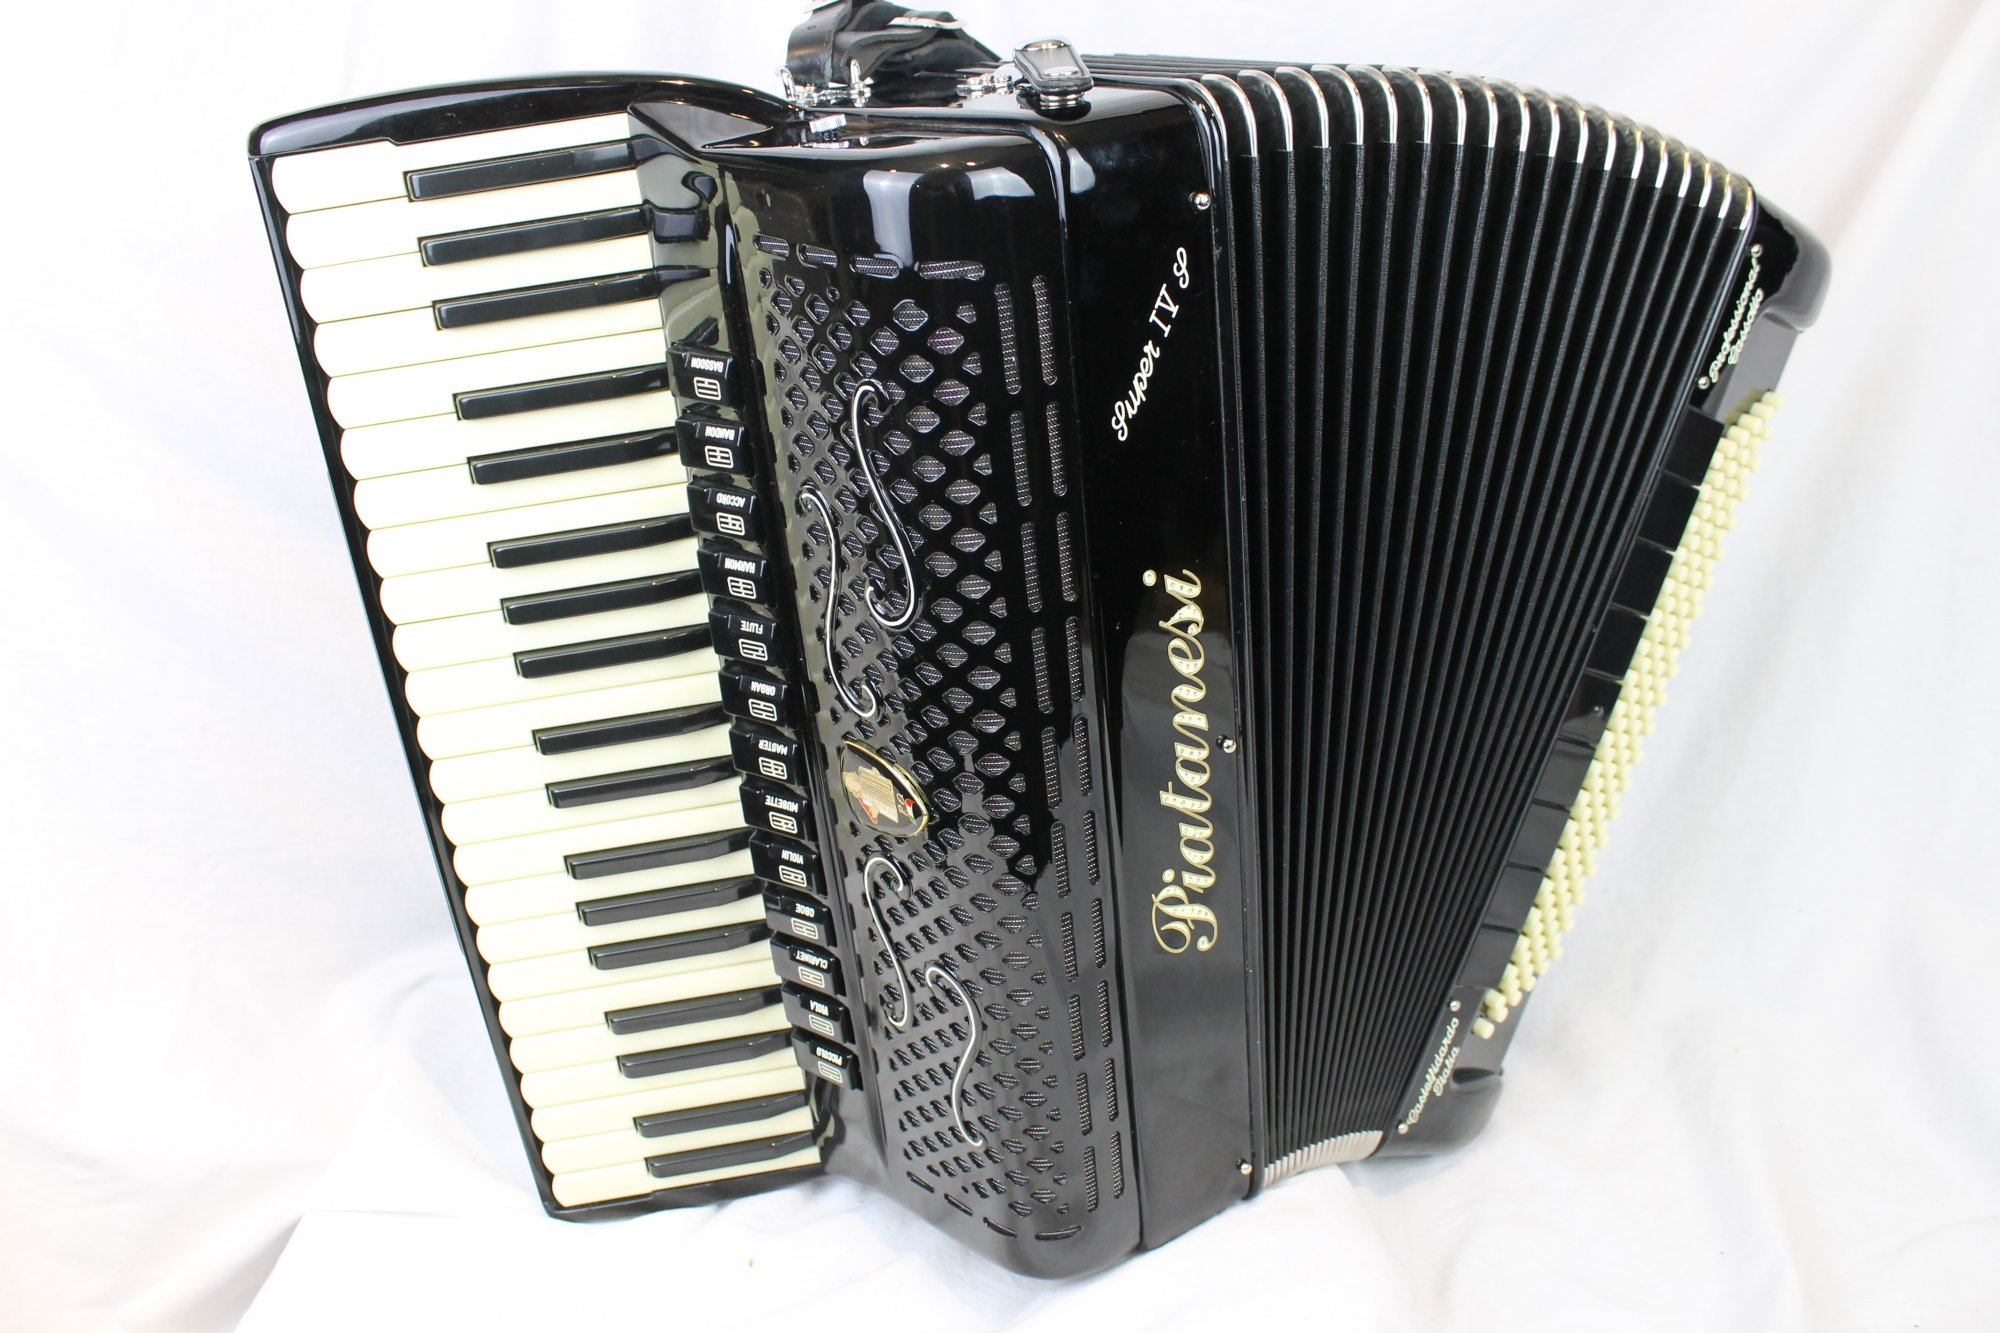 NEW Black Piatanesi Super IV S Piano Accordion LMMM or LMMH 41 120